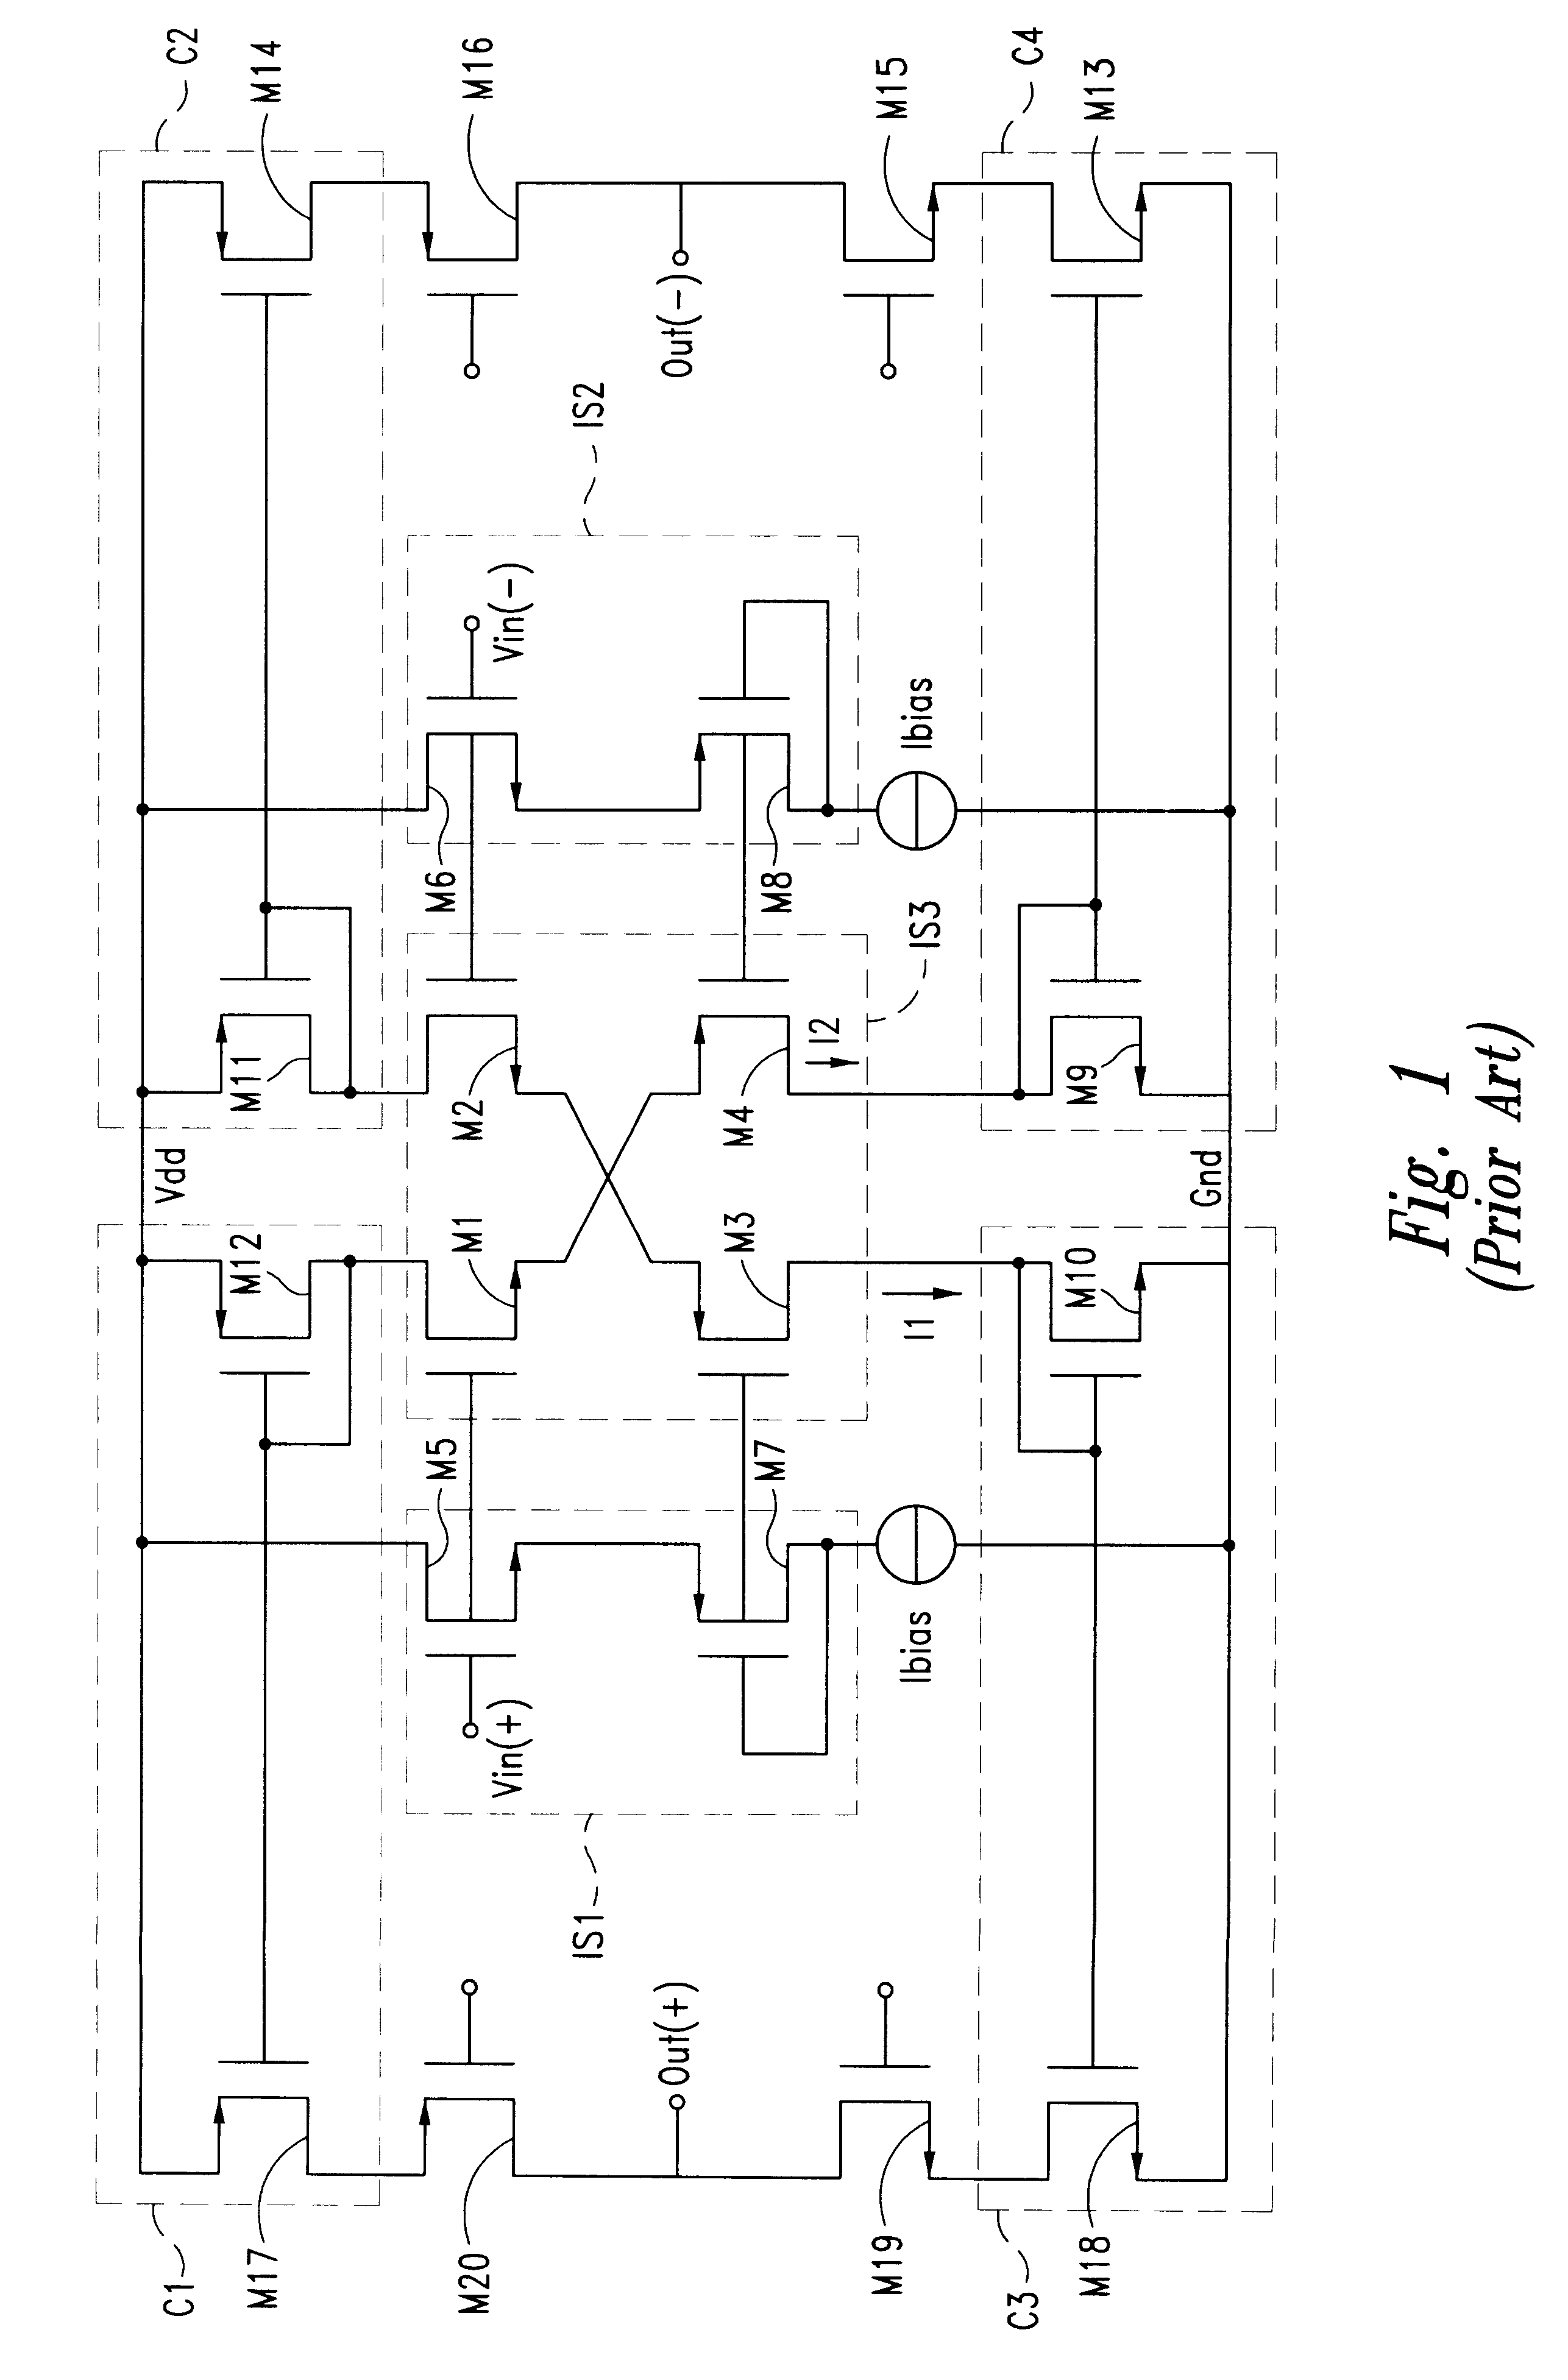 Fig 6 Equivalent Circuit Of The Resistancecoupled Amplifier In Fig